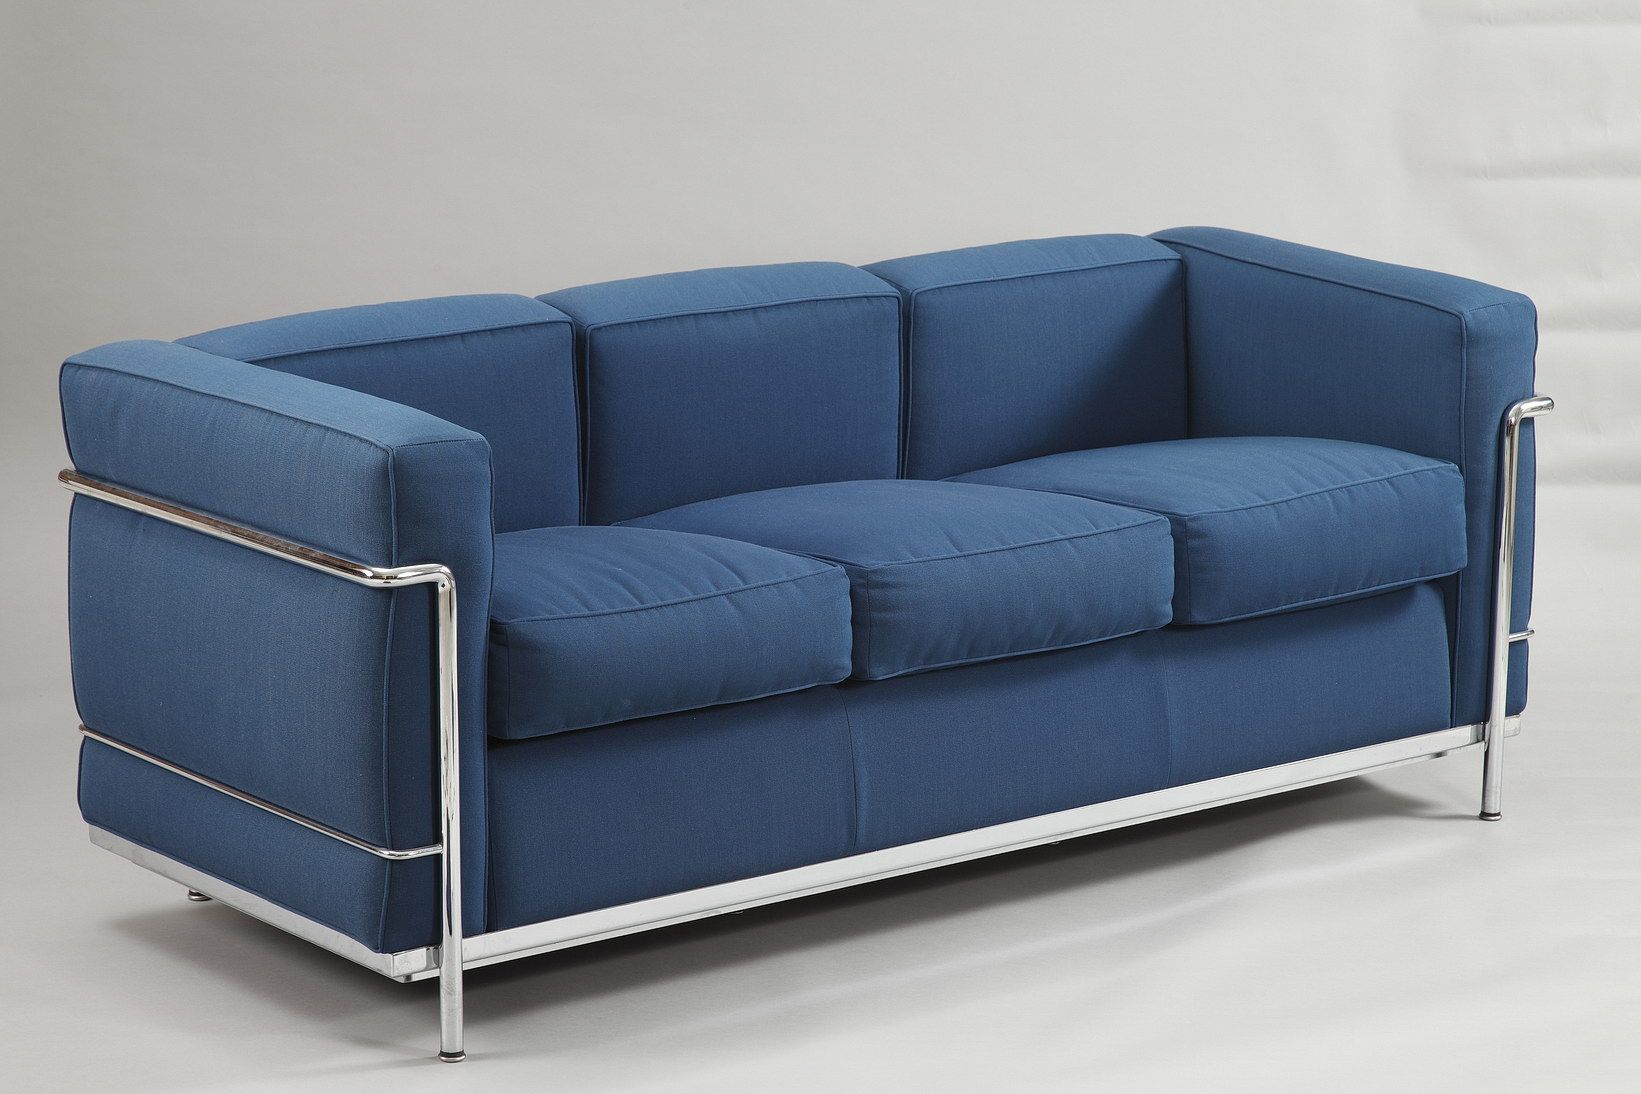 Lc2 Le Corbusier Three Seat Sofa Composed Of A Chromed Steel Structure And Independent Blue Pillows Le Corbusier Canape Design Meuble Design Mobilier De Salon